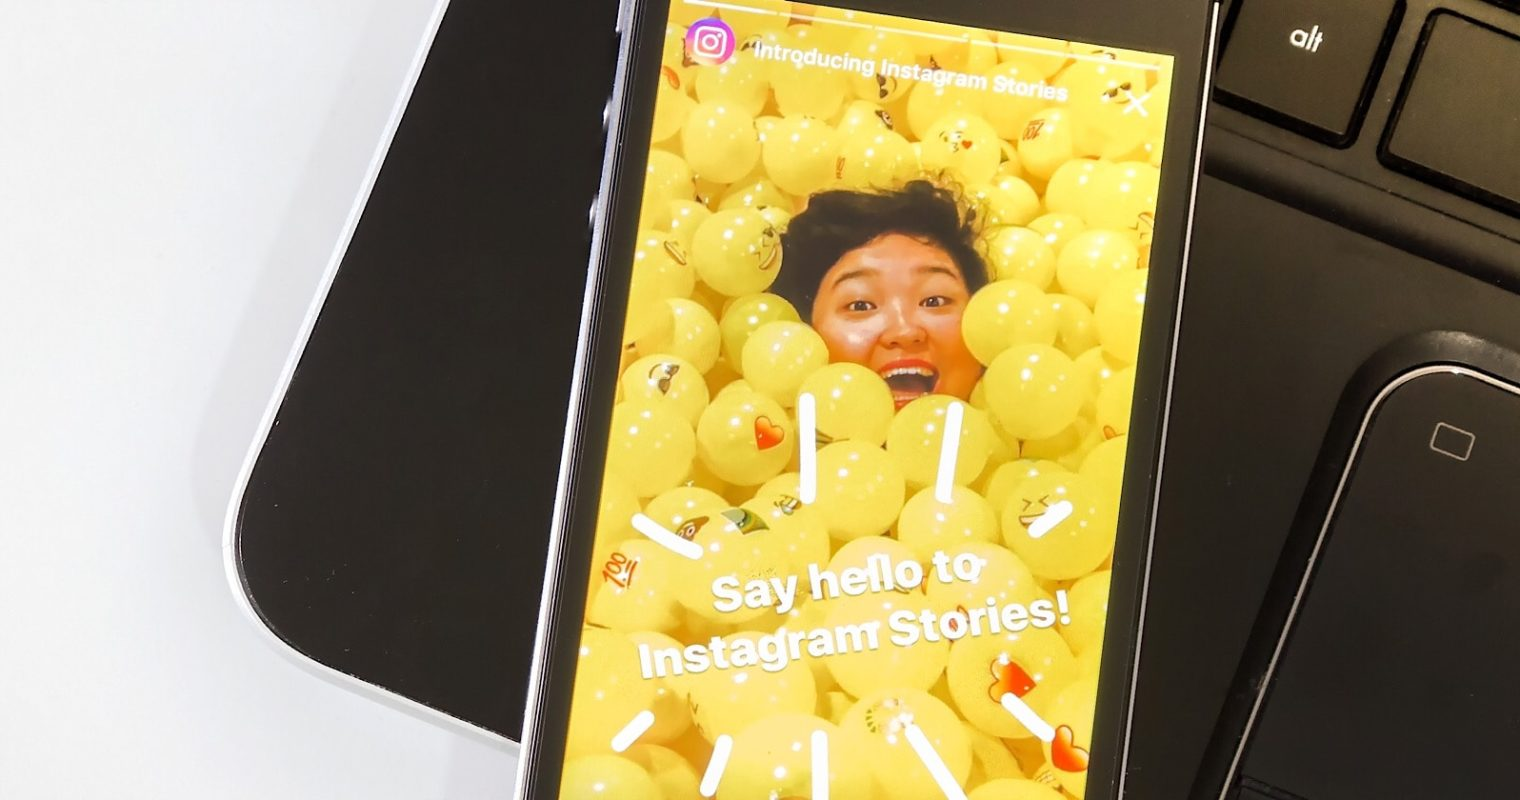 Instagram Tests Ability to Limit Story Views to Specific Friends